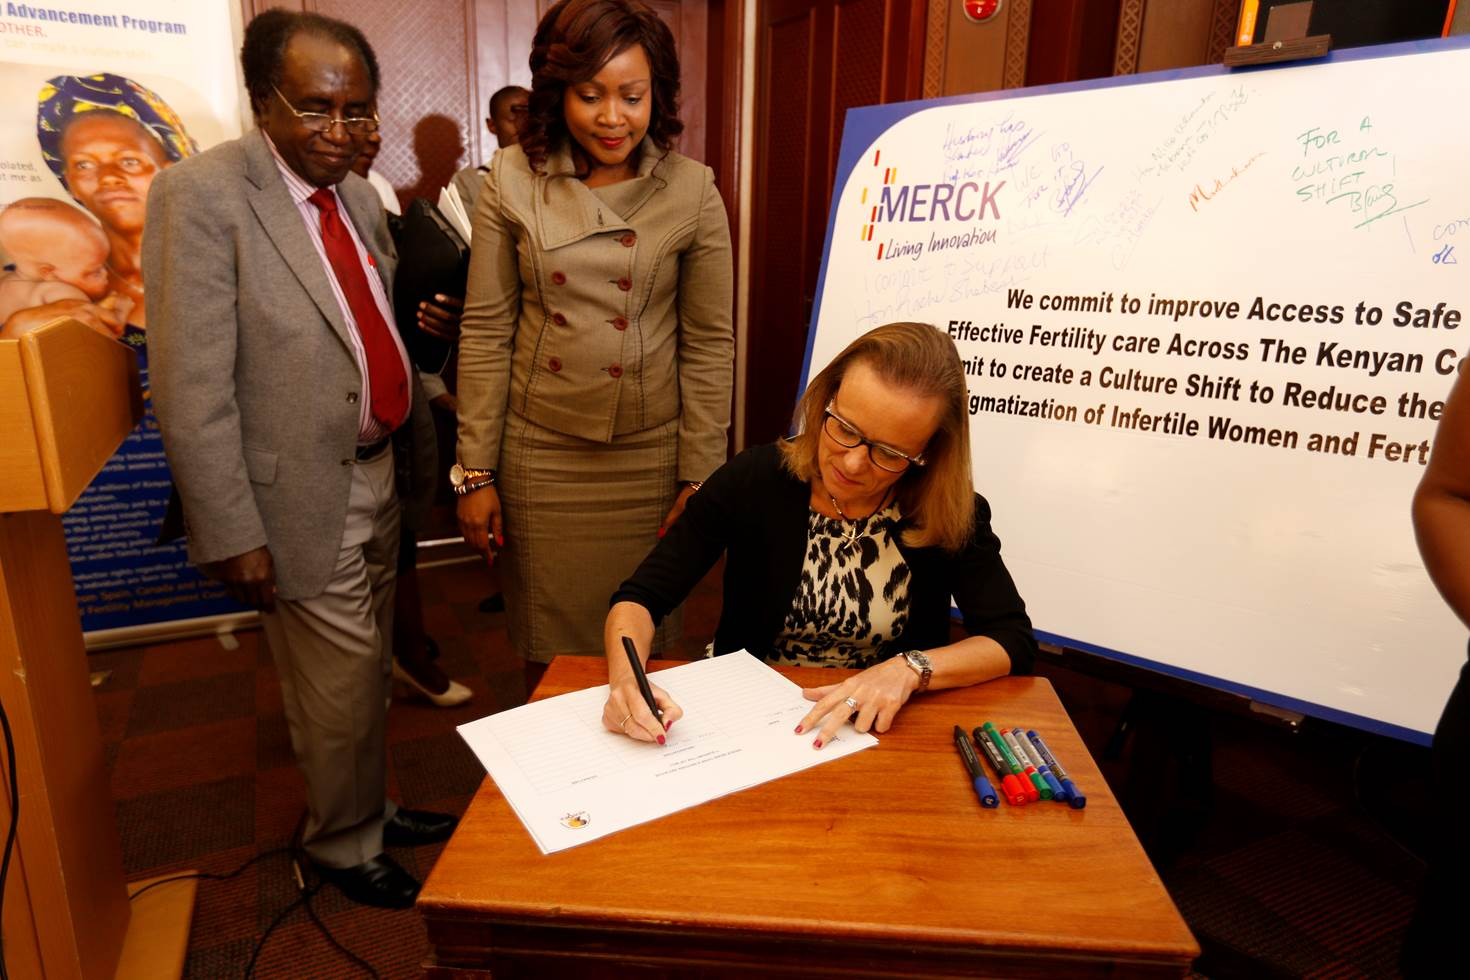 Prof. Koigi Kamau (University of Nairobi), Hon. Joyce Lay (Member of Kenyan Parliament) and Belen Garijo (Merck KGaA, Darmstadt, Germany) launched the More than a Mother campaign in Nairobi